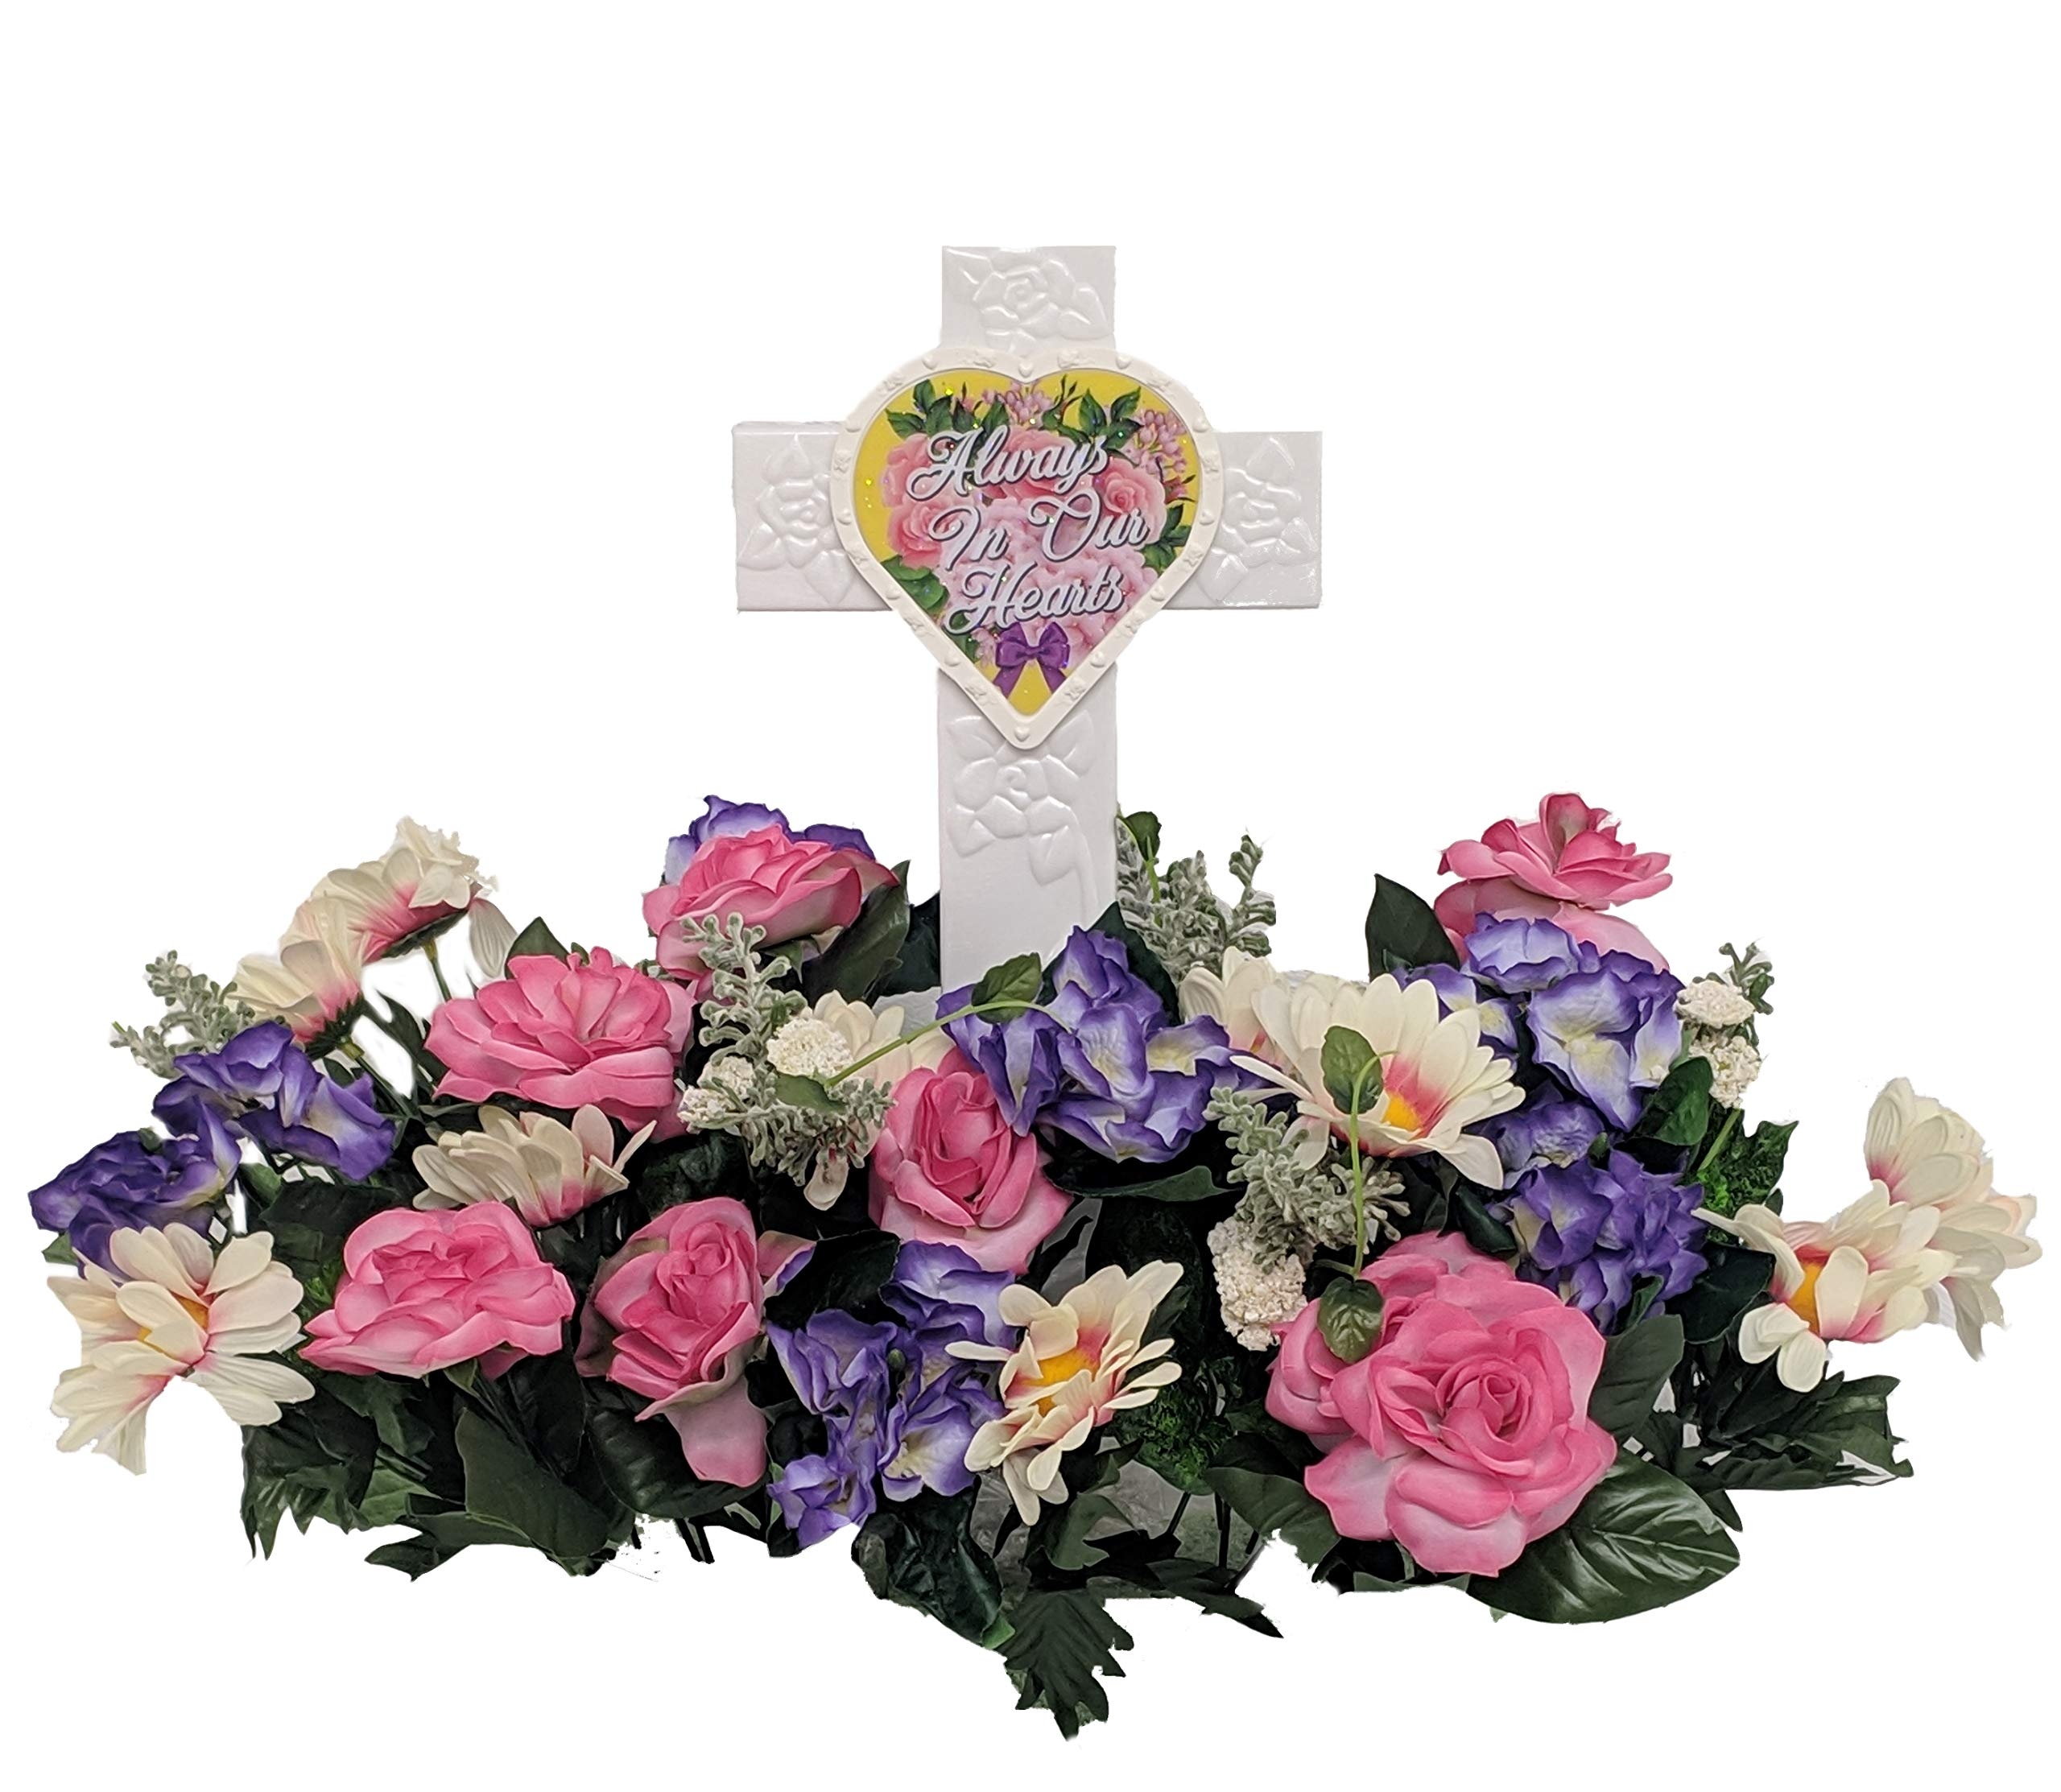 Fire Glo Solar Powered Glow in The Dark Memorial Cross with Flower Bouquette-Graveyard/Cemetary Decorations (Always in Our Hearts)